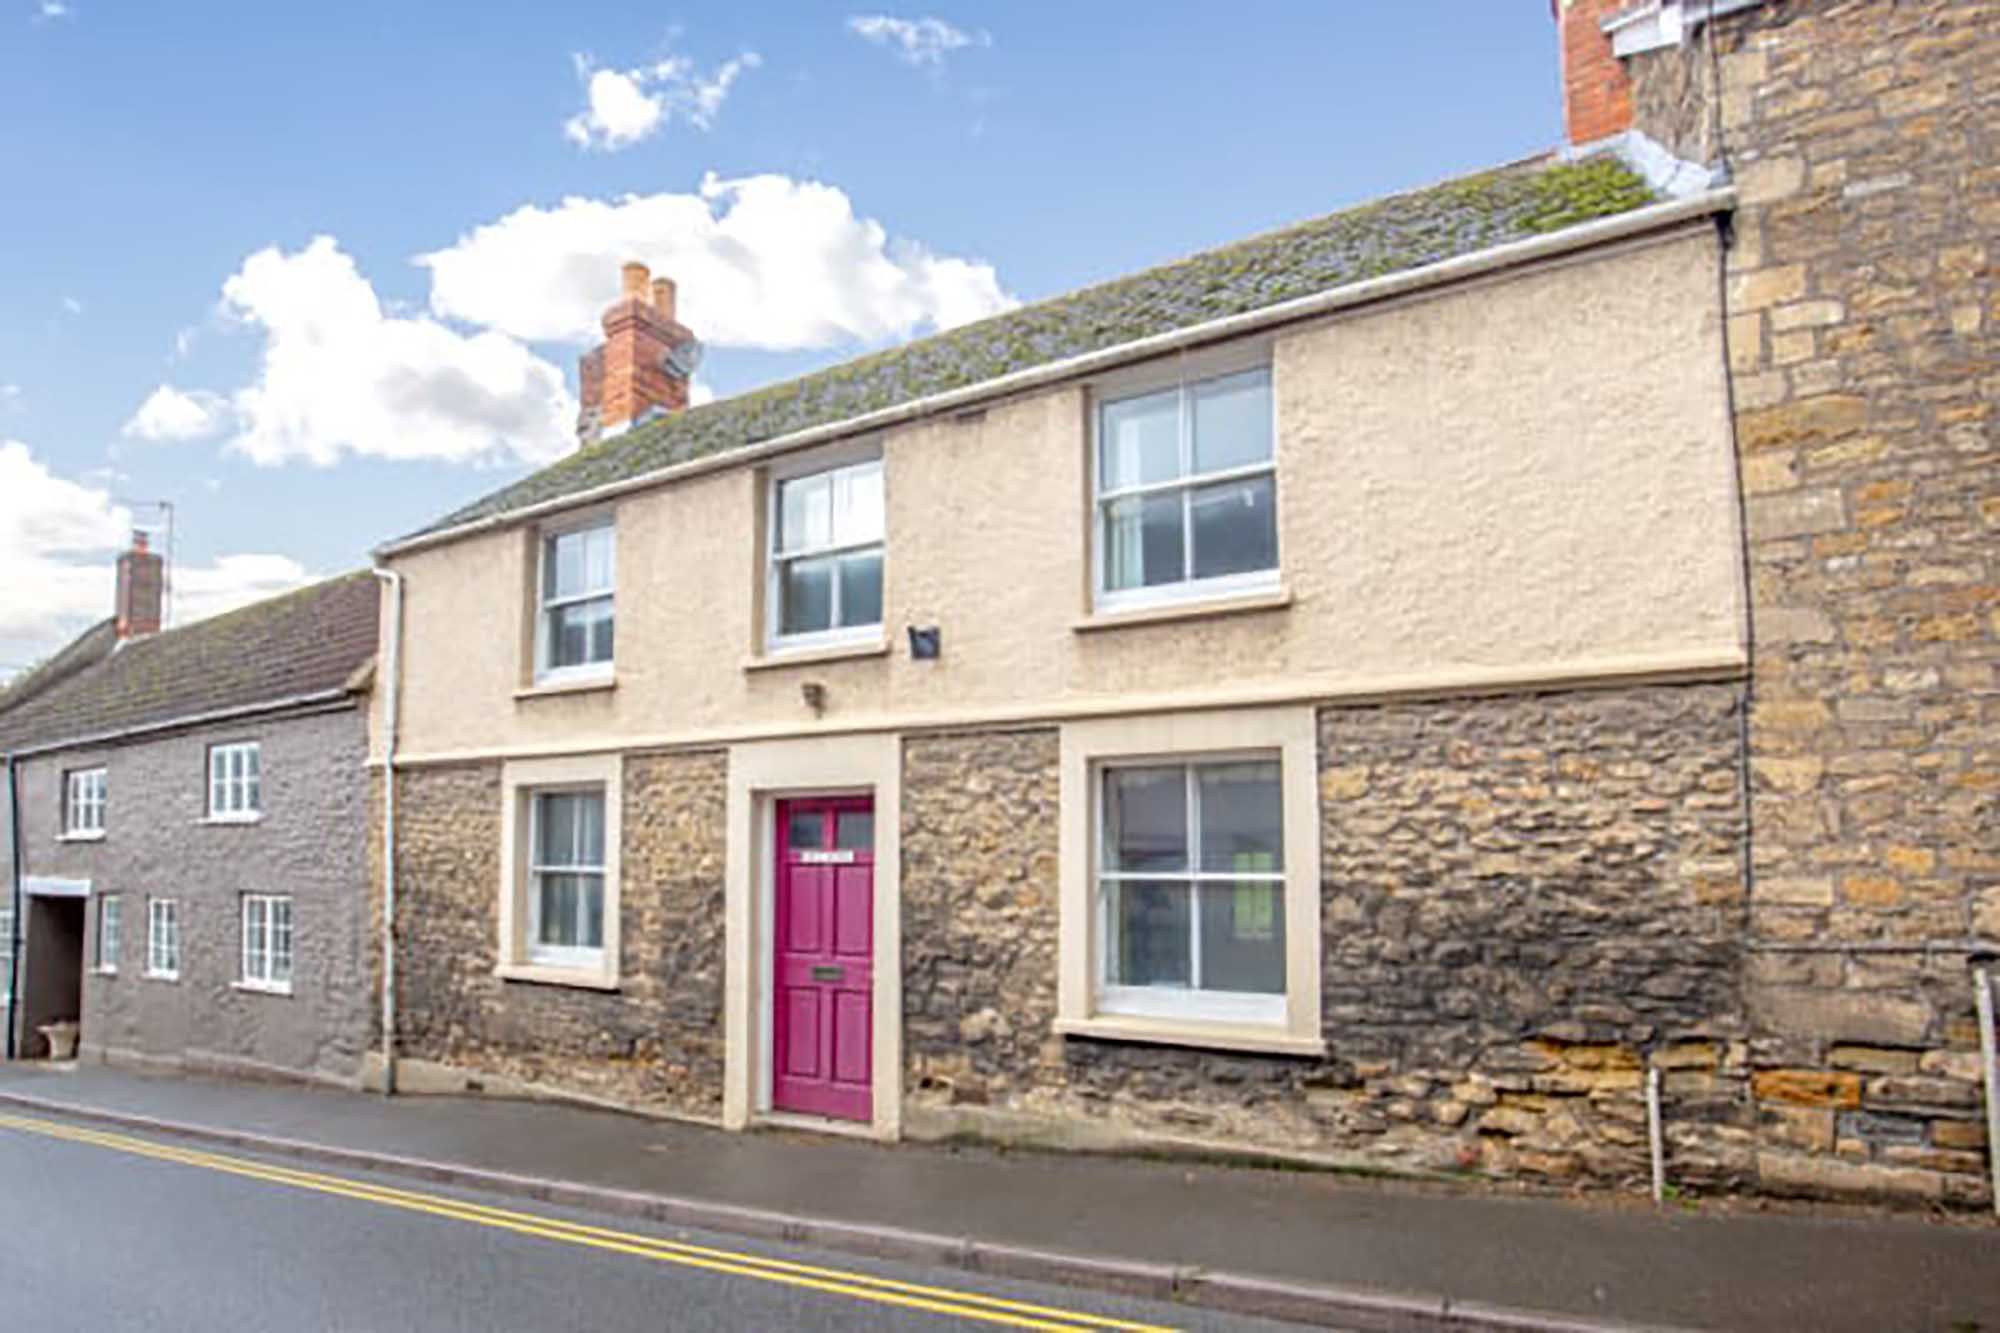 3 bedroom town house, Bruton – perfect for renovation